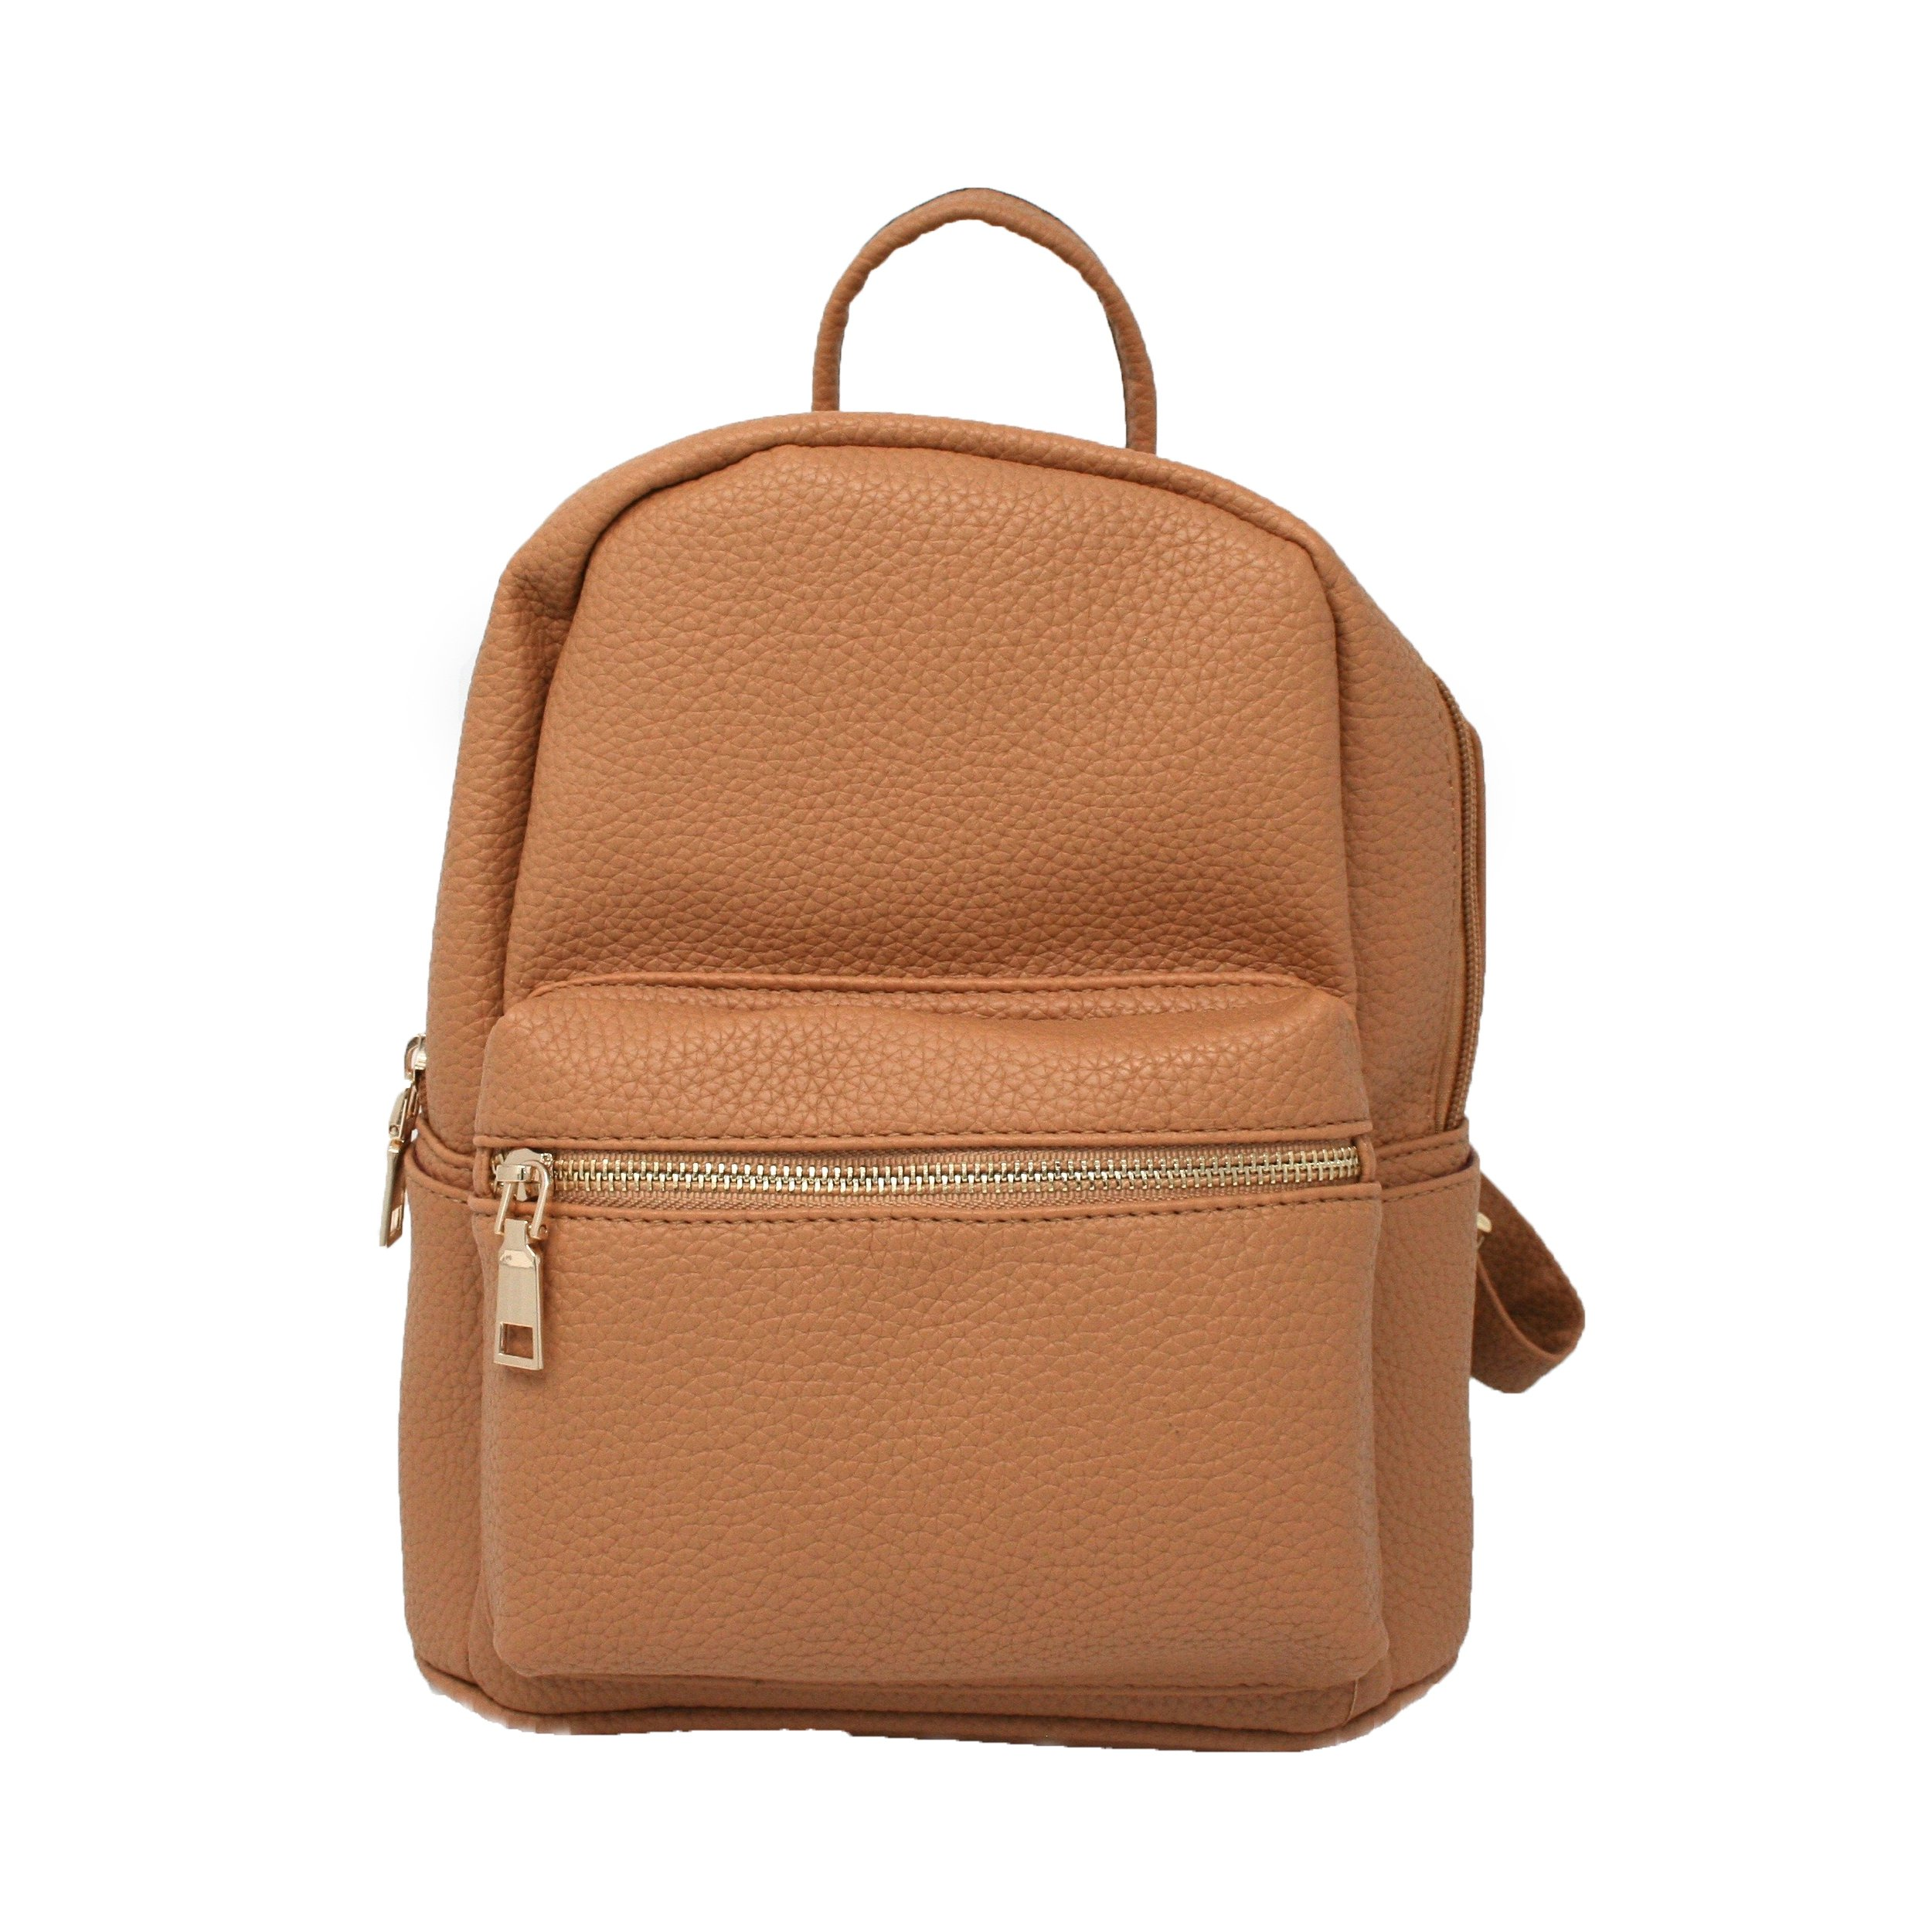 Casual Fashion Leather Mini Backpack Bag for Women or Girls Various Styles (AJ118 Light Brown)